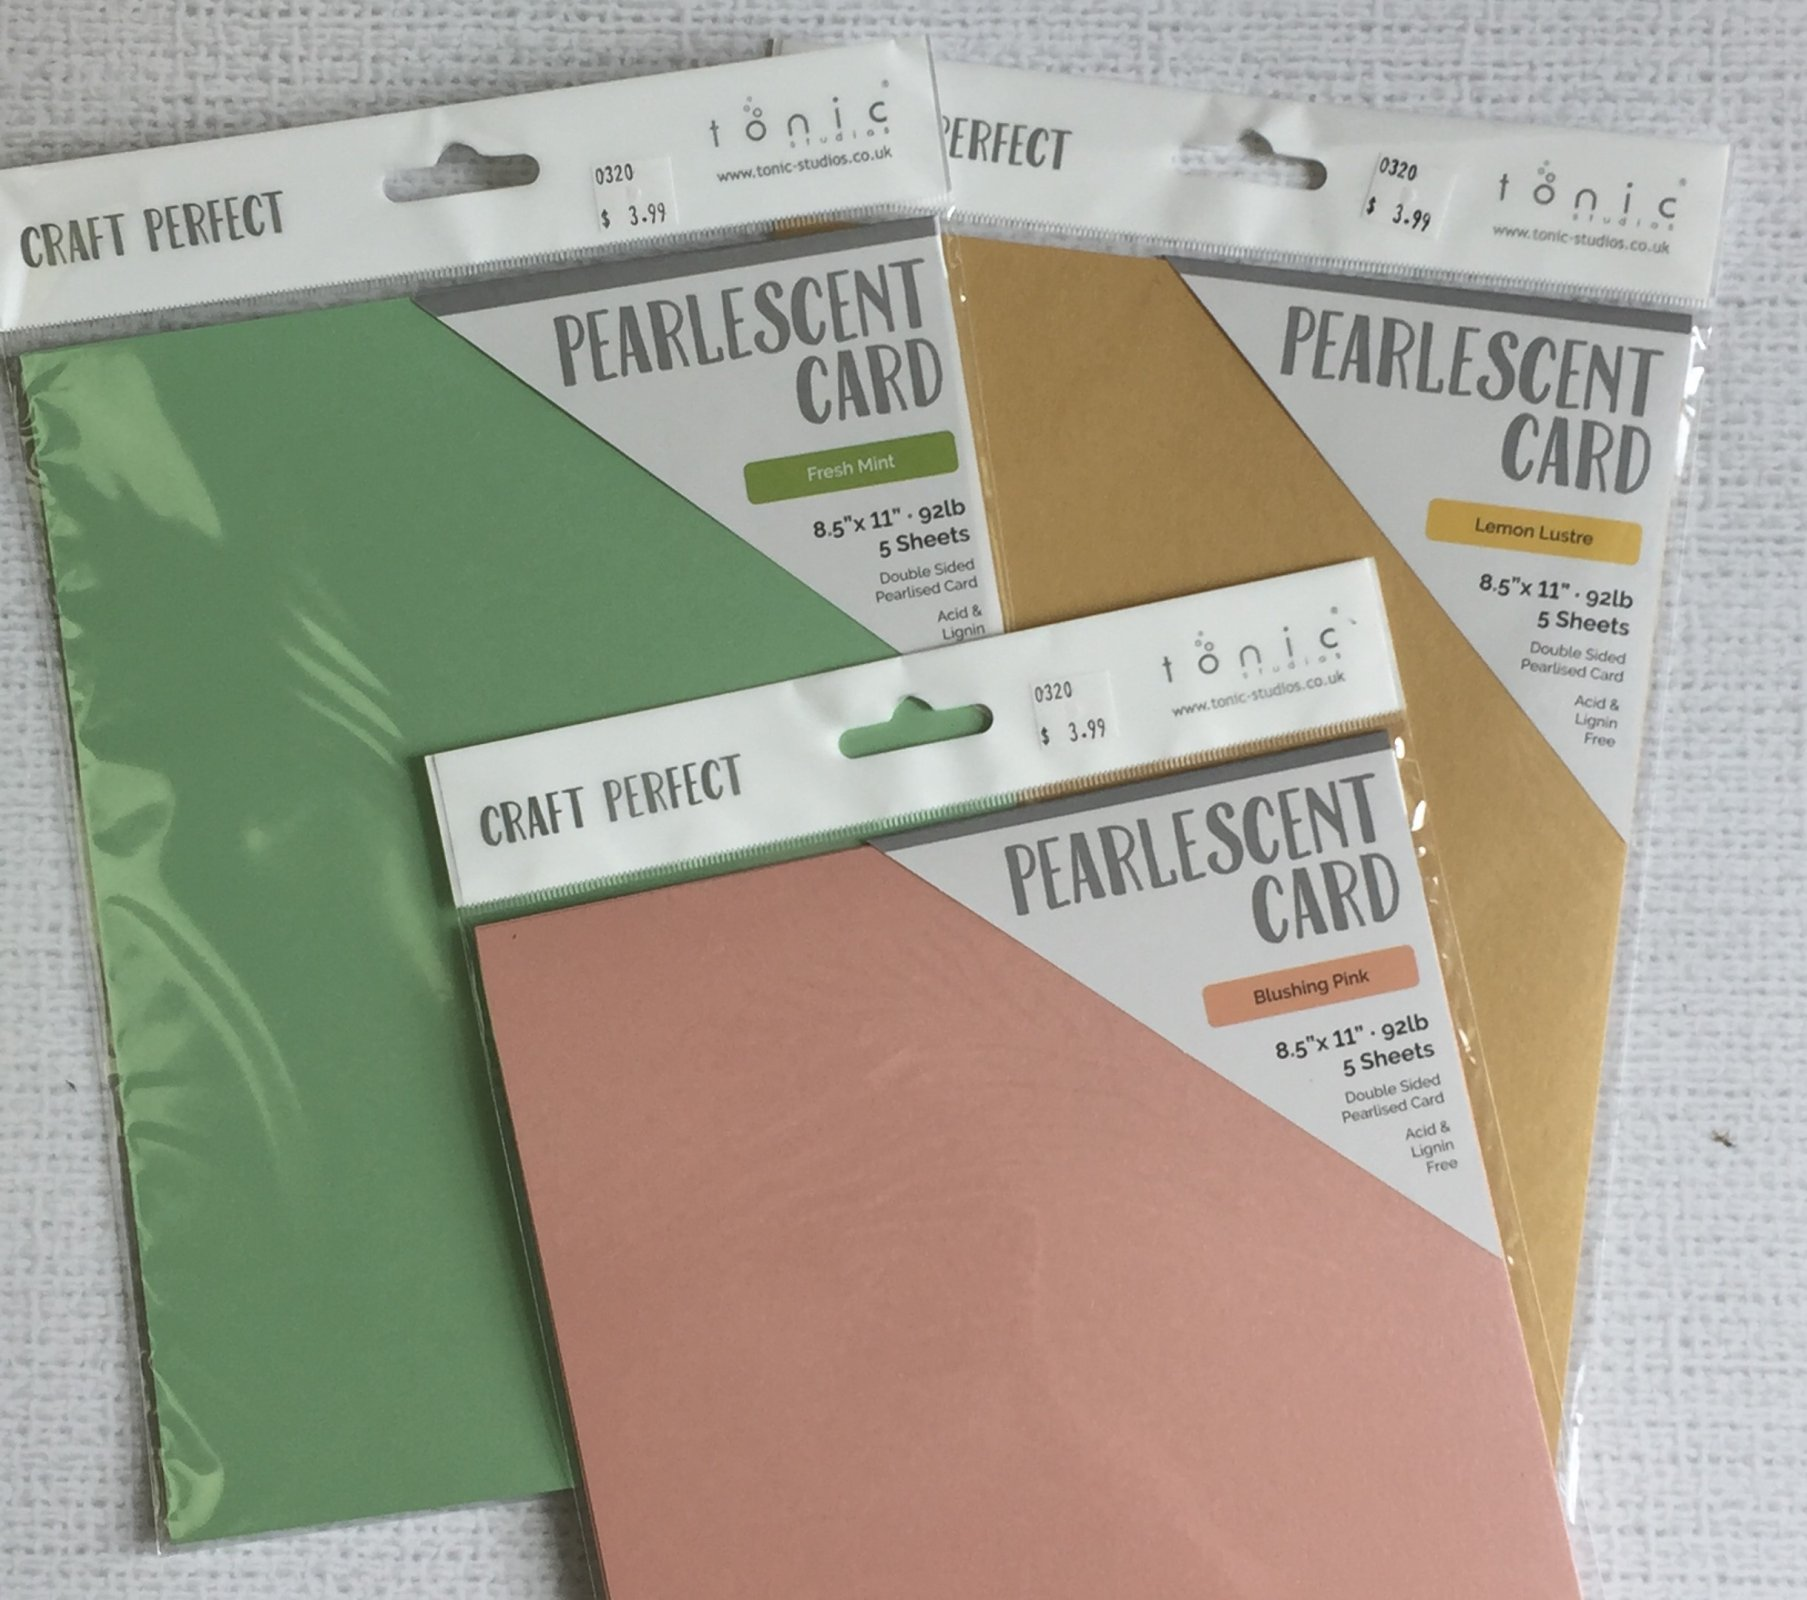 ^Pearlescent Card Bundle 1 (Craft Perfect)